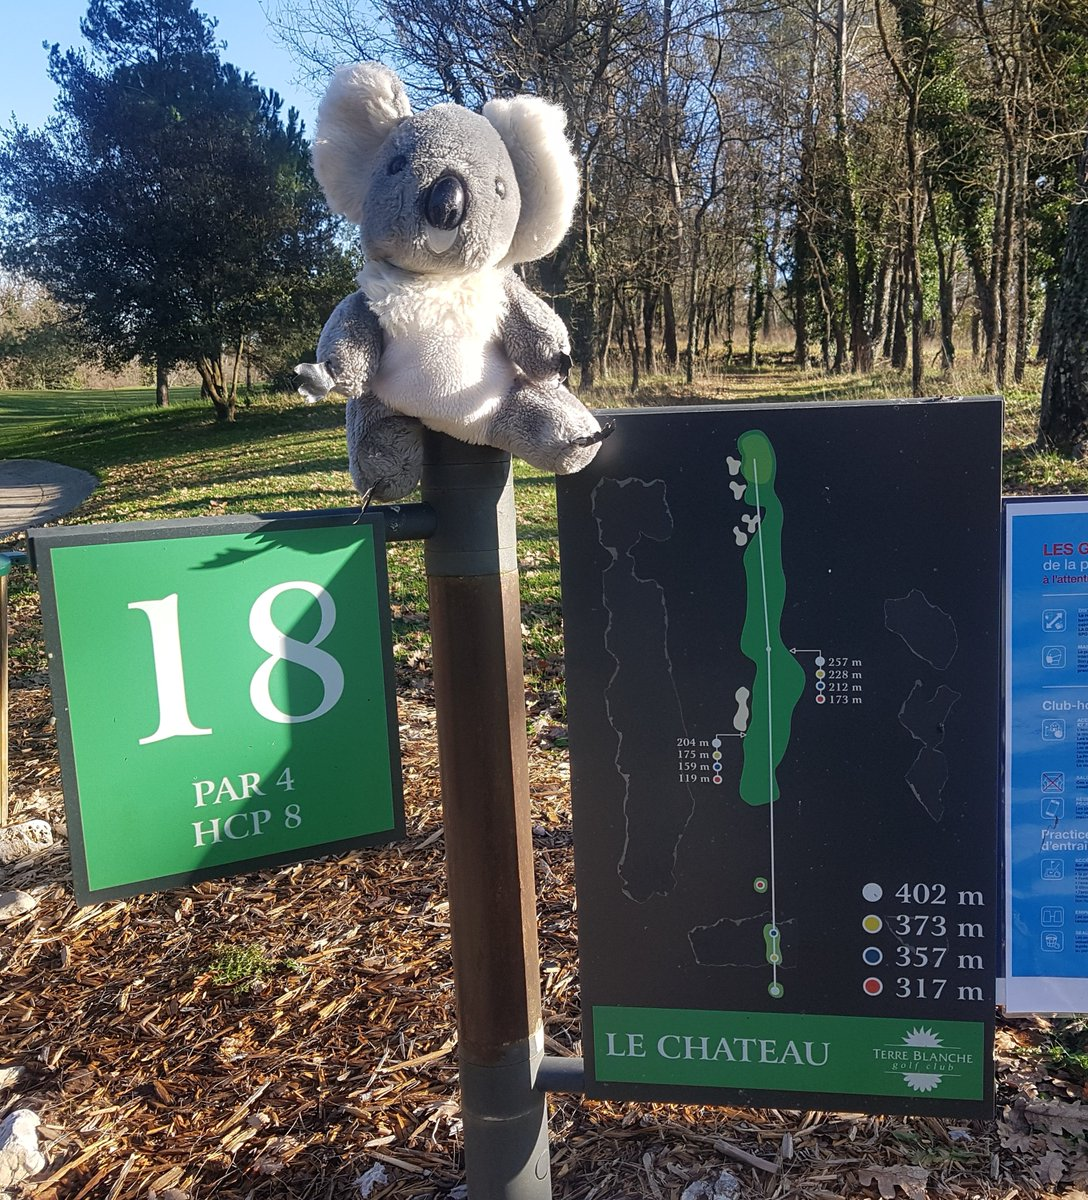 AND you just can't keep him out of the 📸with 🇦🇺🐨@ted_koala @CallawayGolfEU @CallawayTour looking super chilled out on a glorious winter's morning playing @Terre_Blanche @EuropeanTourETD   Thank you everyone @Terre_Blanche & look forward to return & play full 18 ...  Bernie ☺️